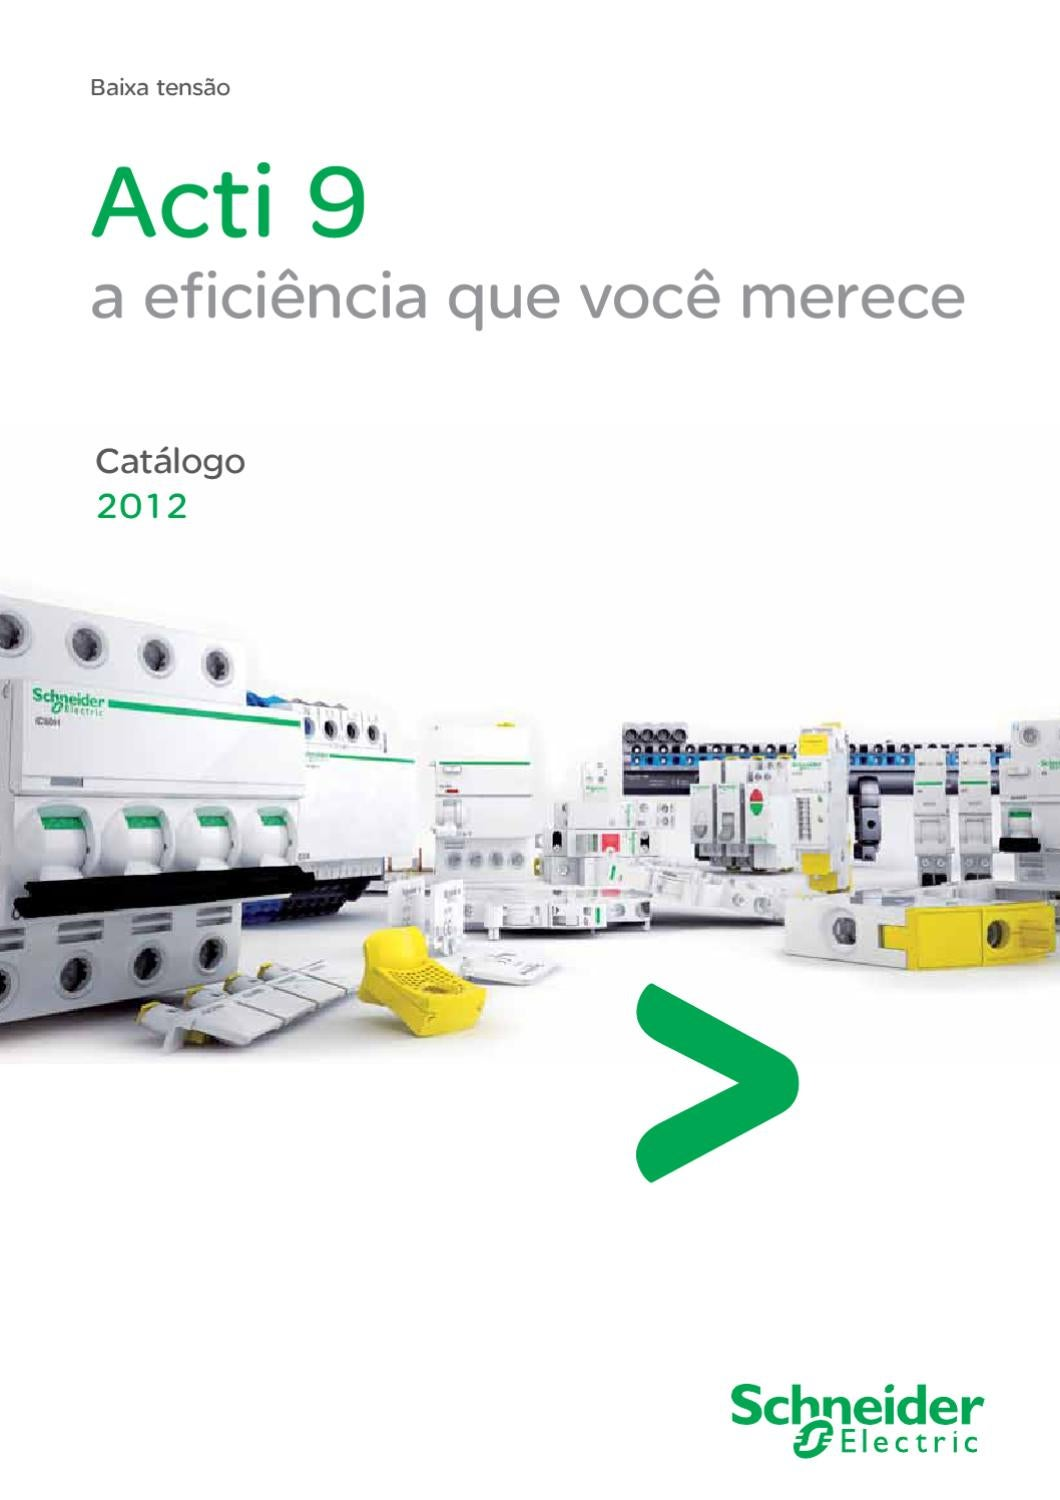 Catalogo Completo Acti9 By Schneider Electric Brasil Issuu